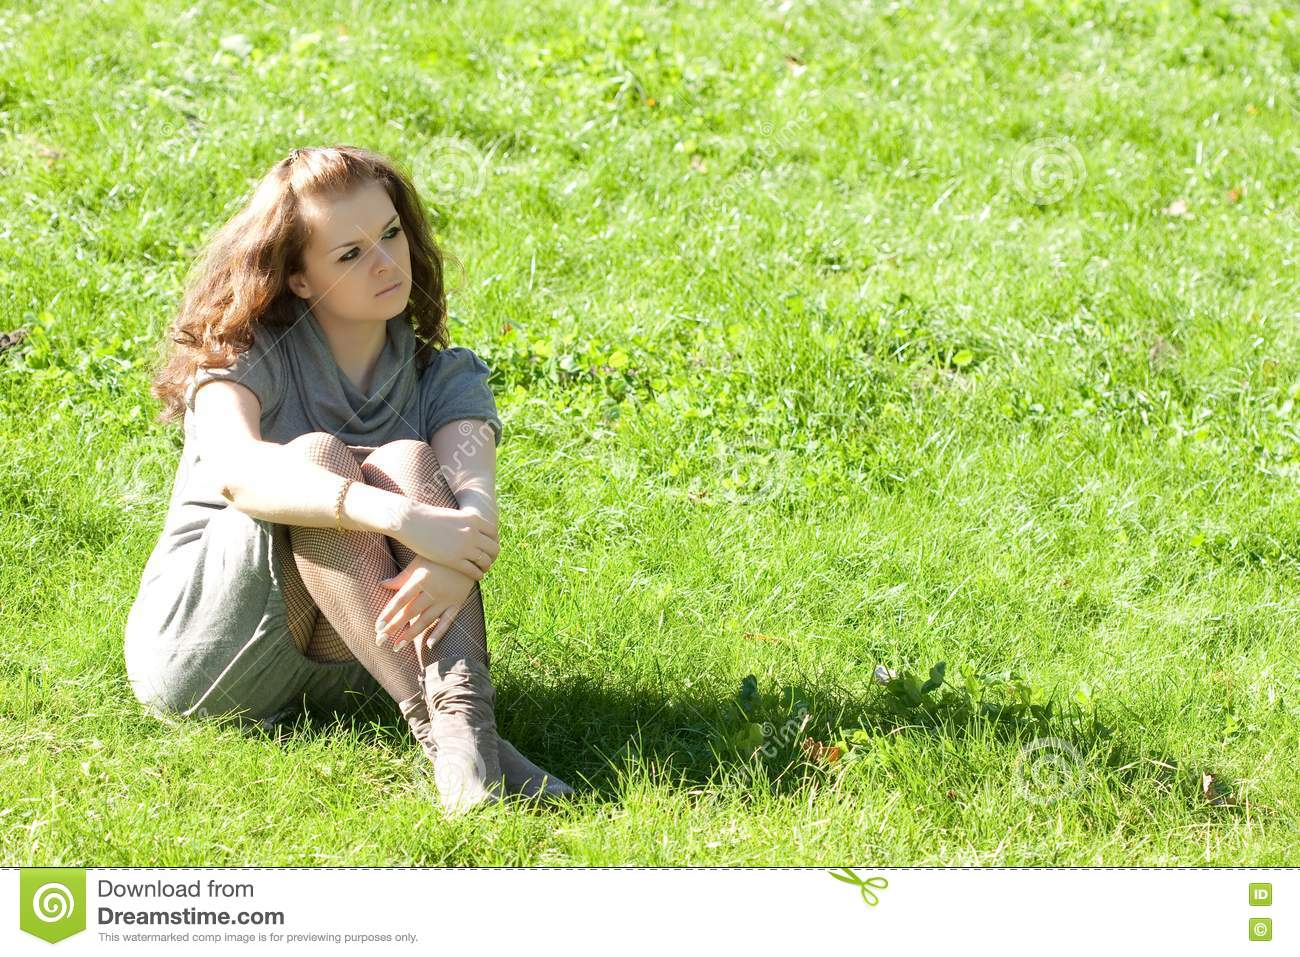 ... On Green Grass Royalty Free Stock Photography - Image: 16229827: dreamstime.com/royalty-free-stock-photography-girl-sitting-green...